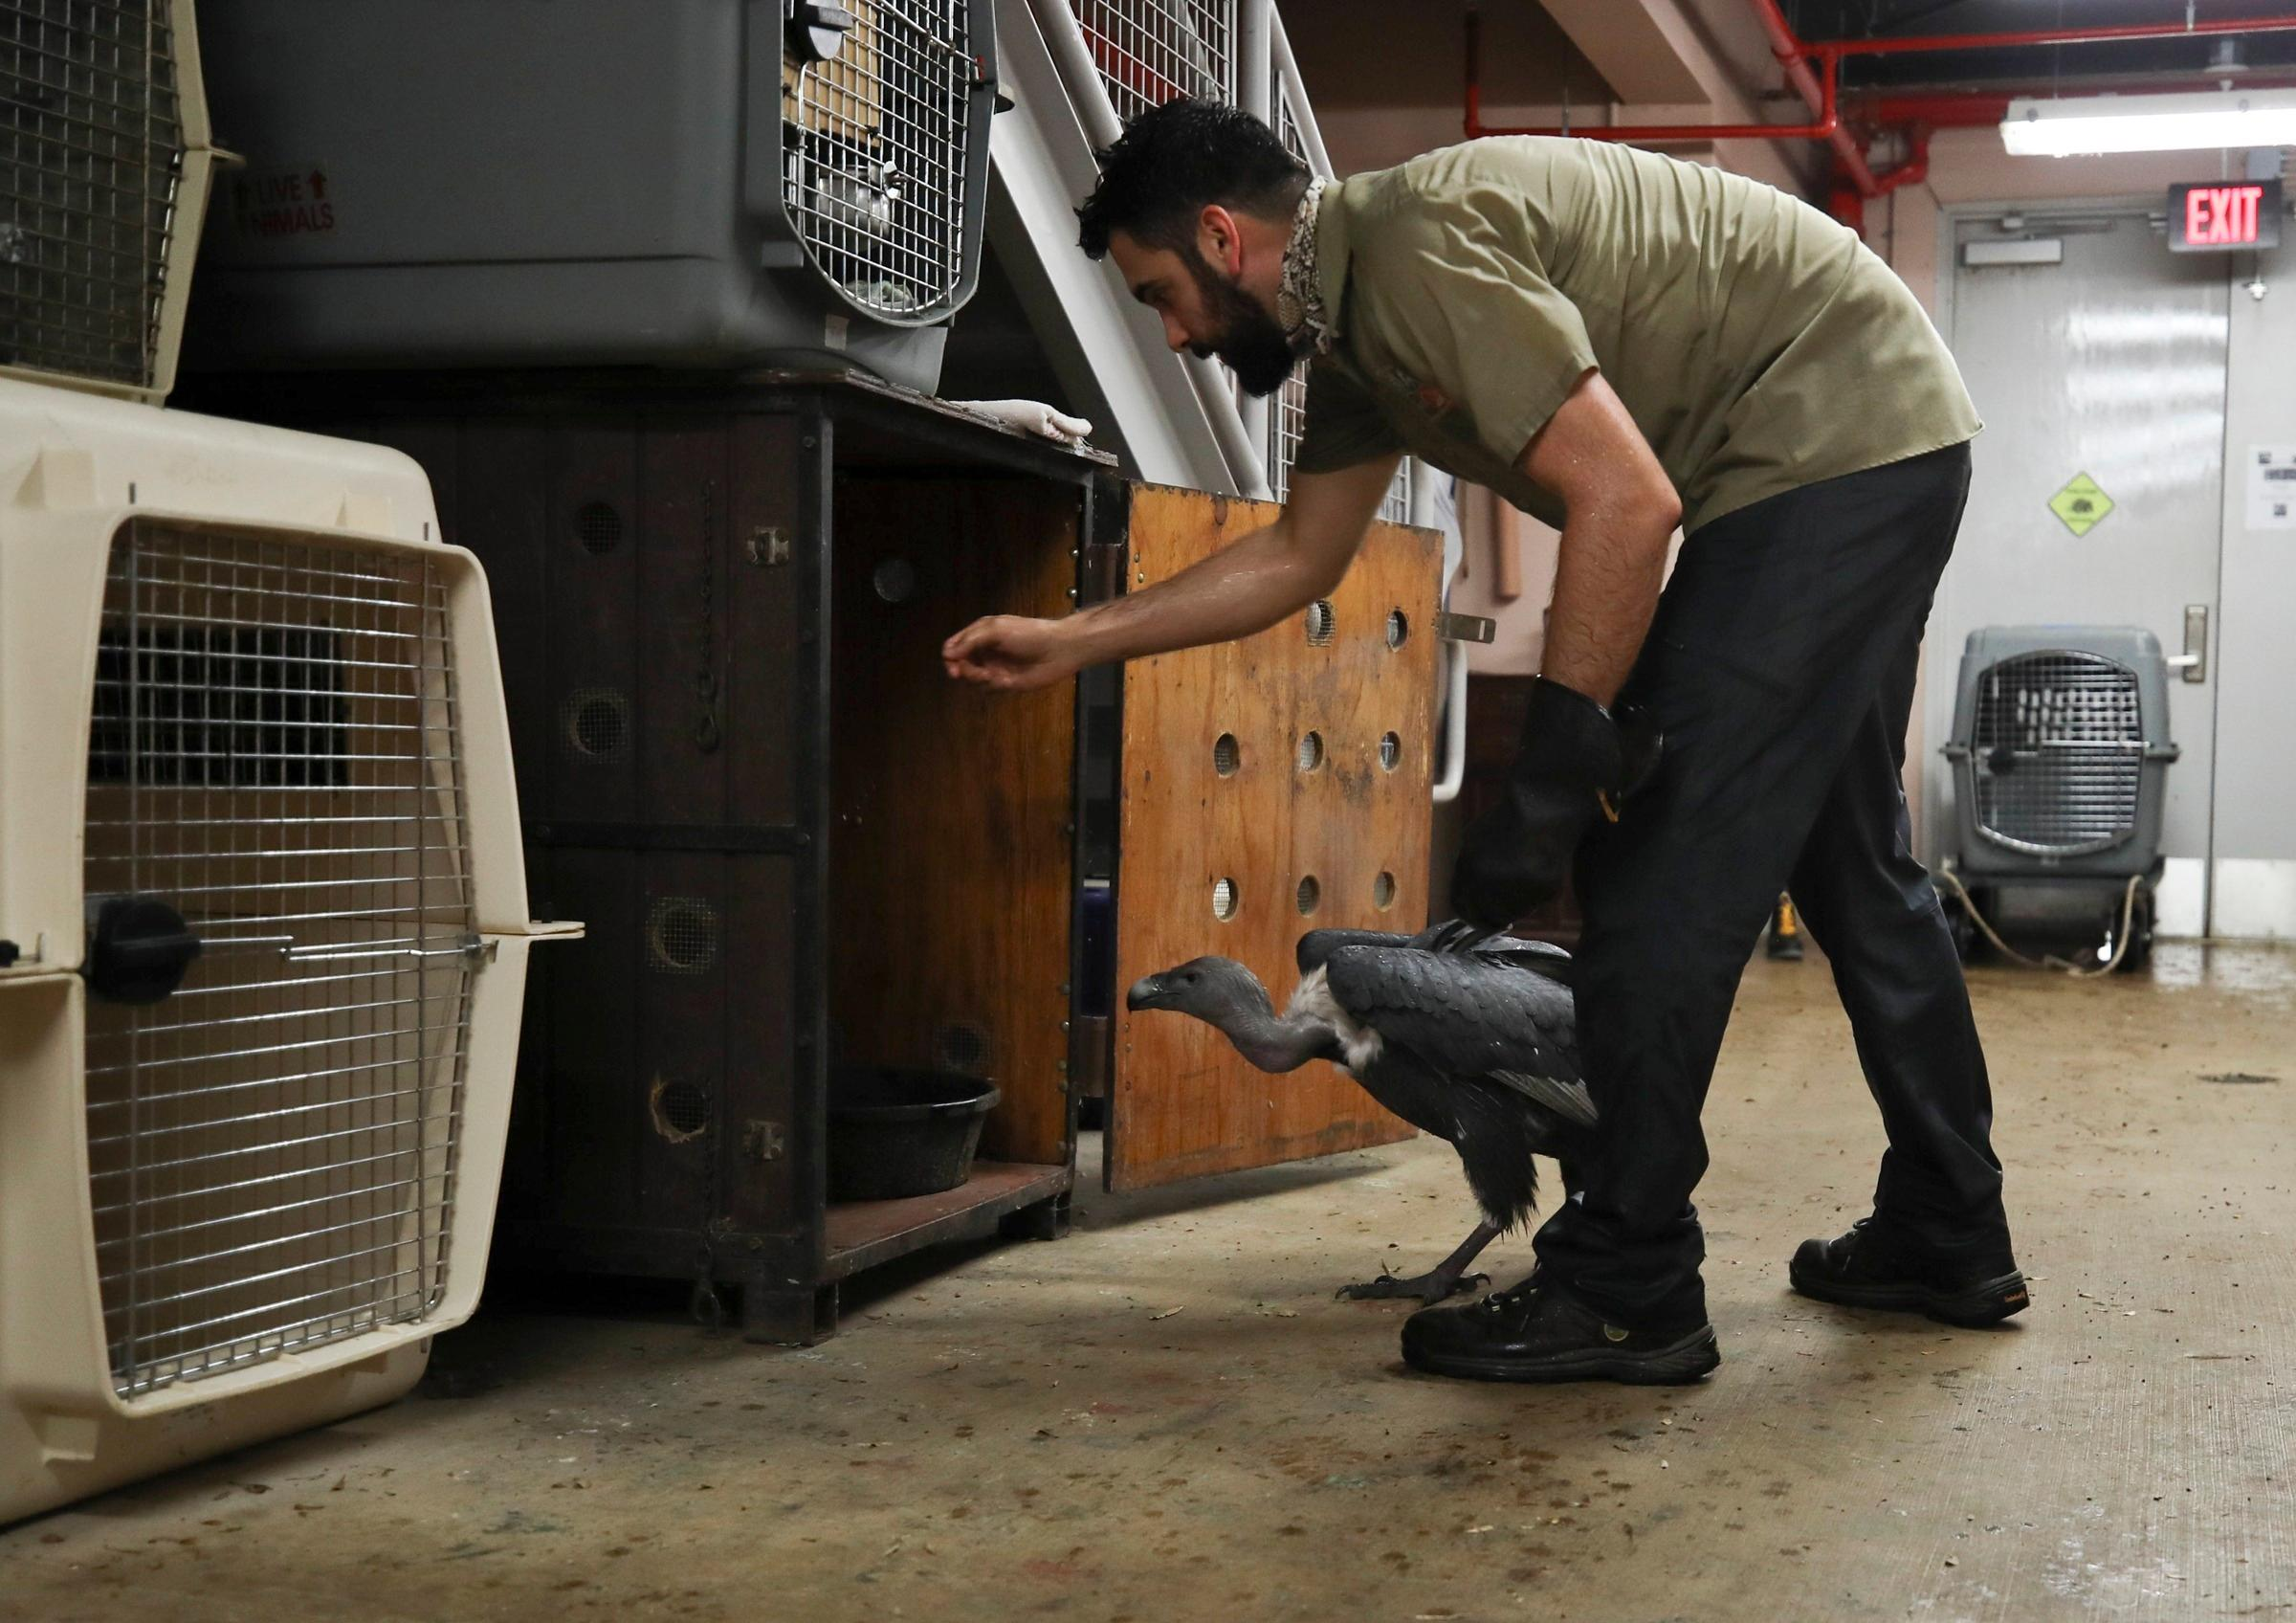 Zookeeper Ryan Martinez leads an Indian white-rumped vulture into a crate as animals are moved into a shelter at the Zoo Miami in preparation for Hurricane Irma on Saturday, Sept. 9, 2017, in Miami. (Al Diaz/Miami Herald via AP)